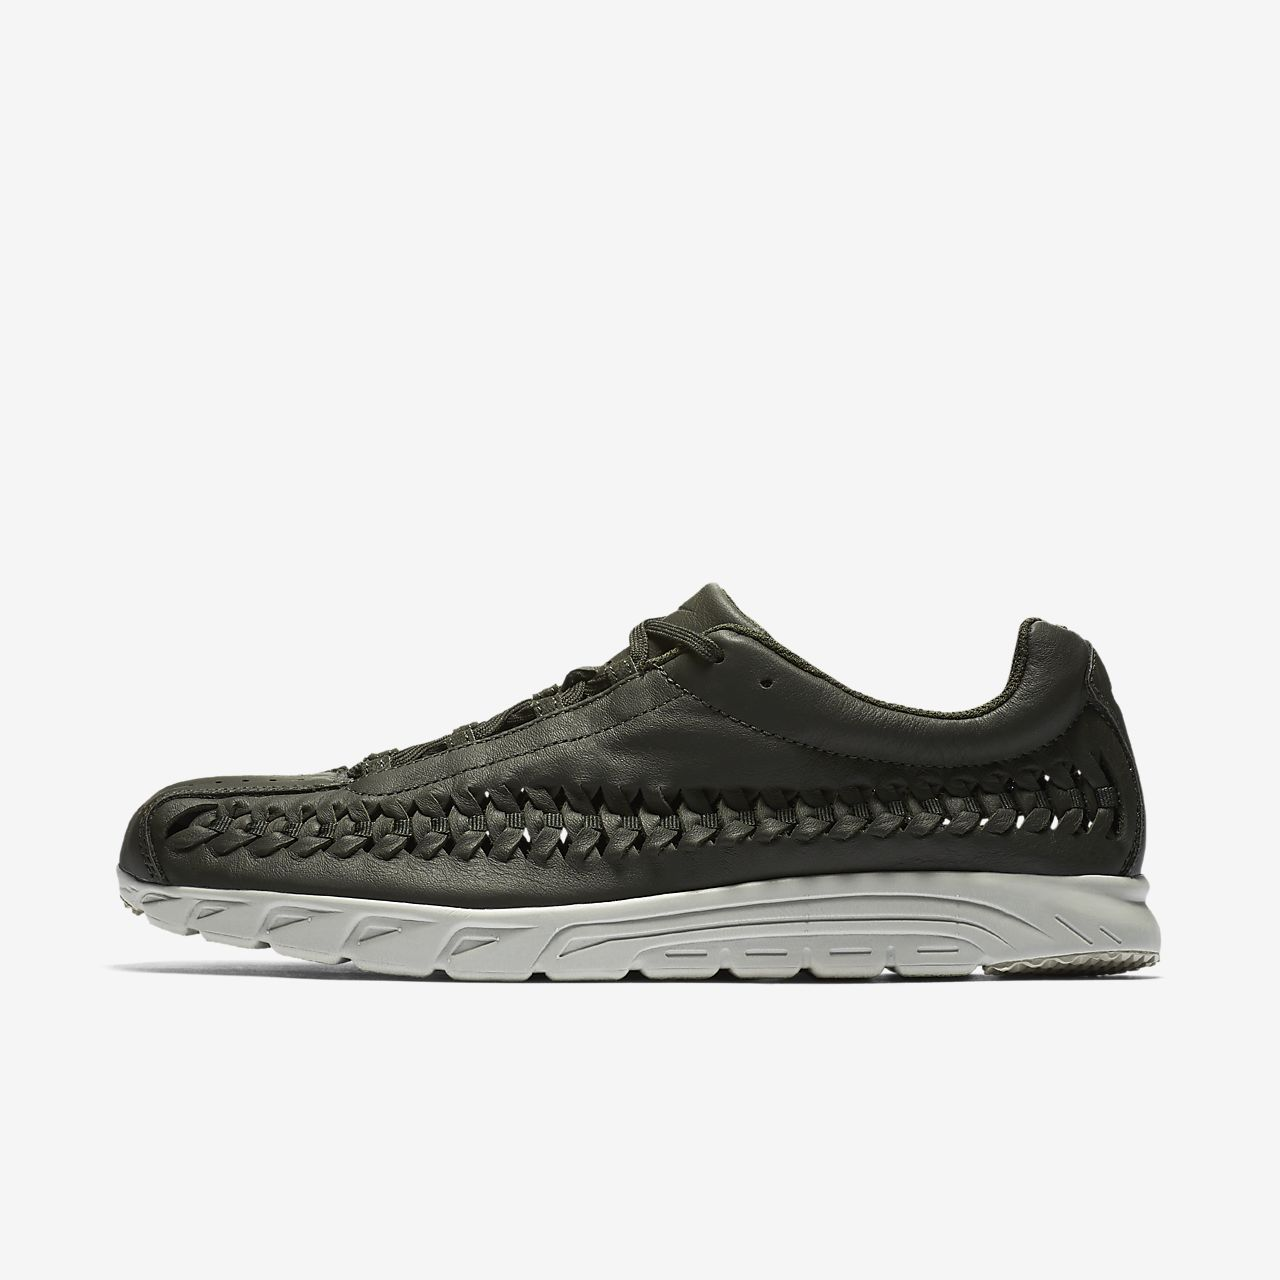 ... Nike Mayfly Woven Men's Shoe